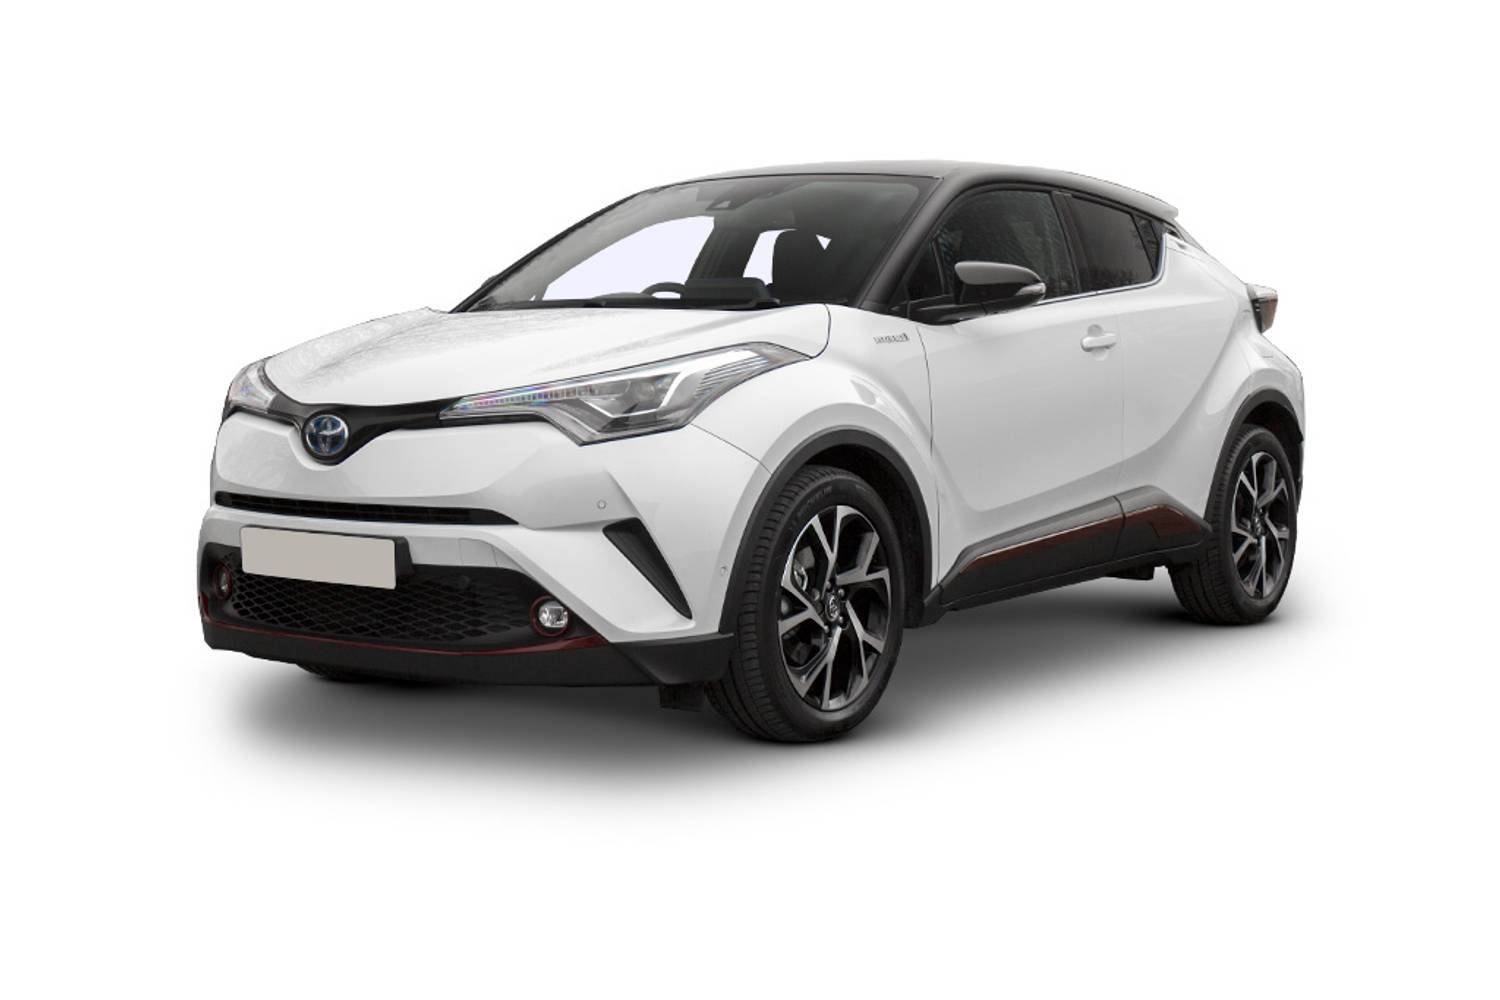 1 Year Car Lease >> New Toyota C-HR Hatchback 1.8 Hybrid Dynamic 5-door CVT ...